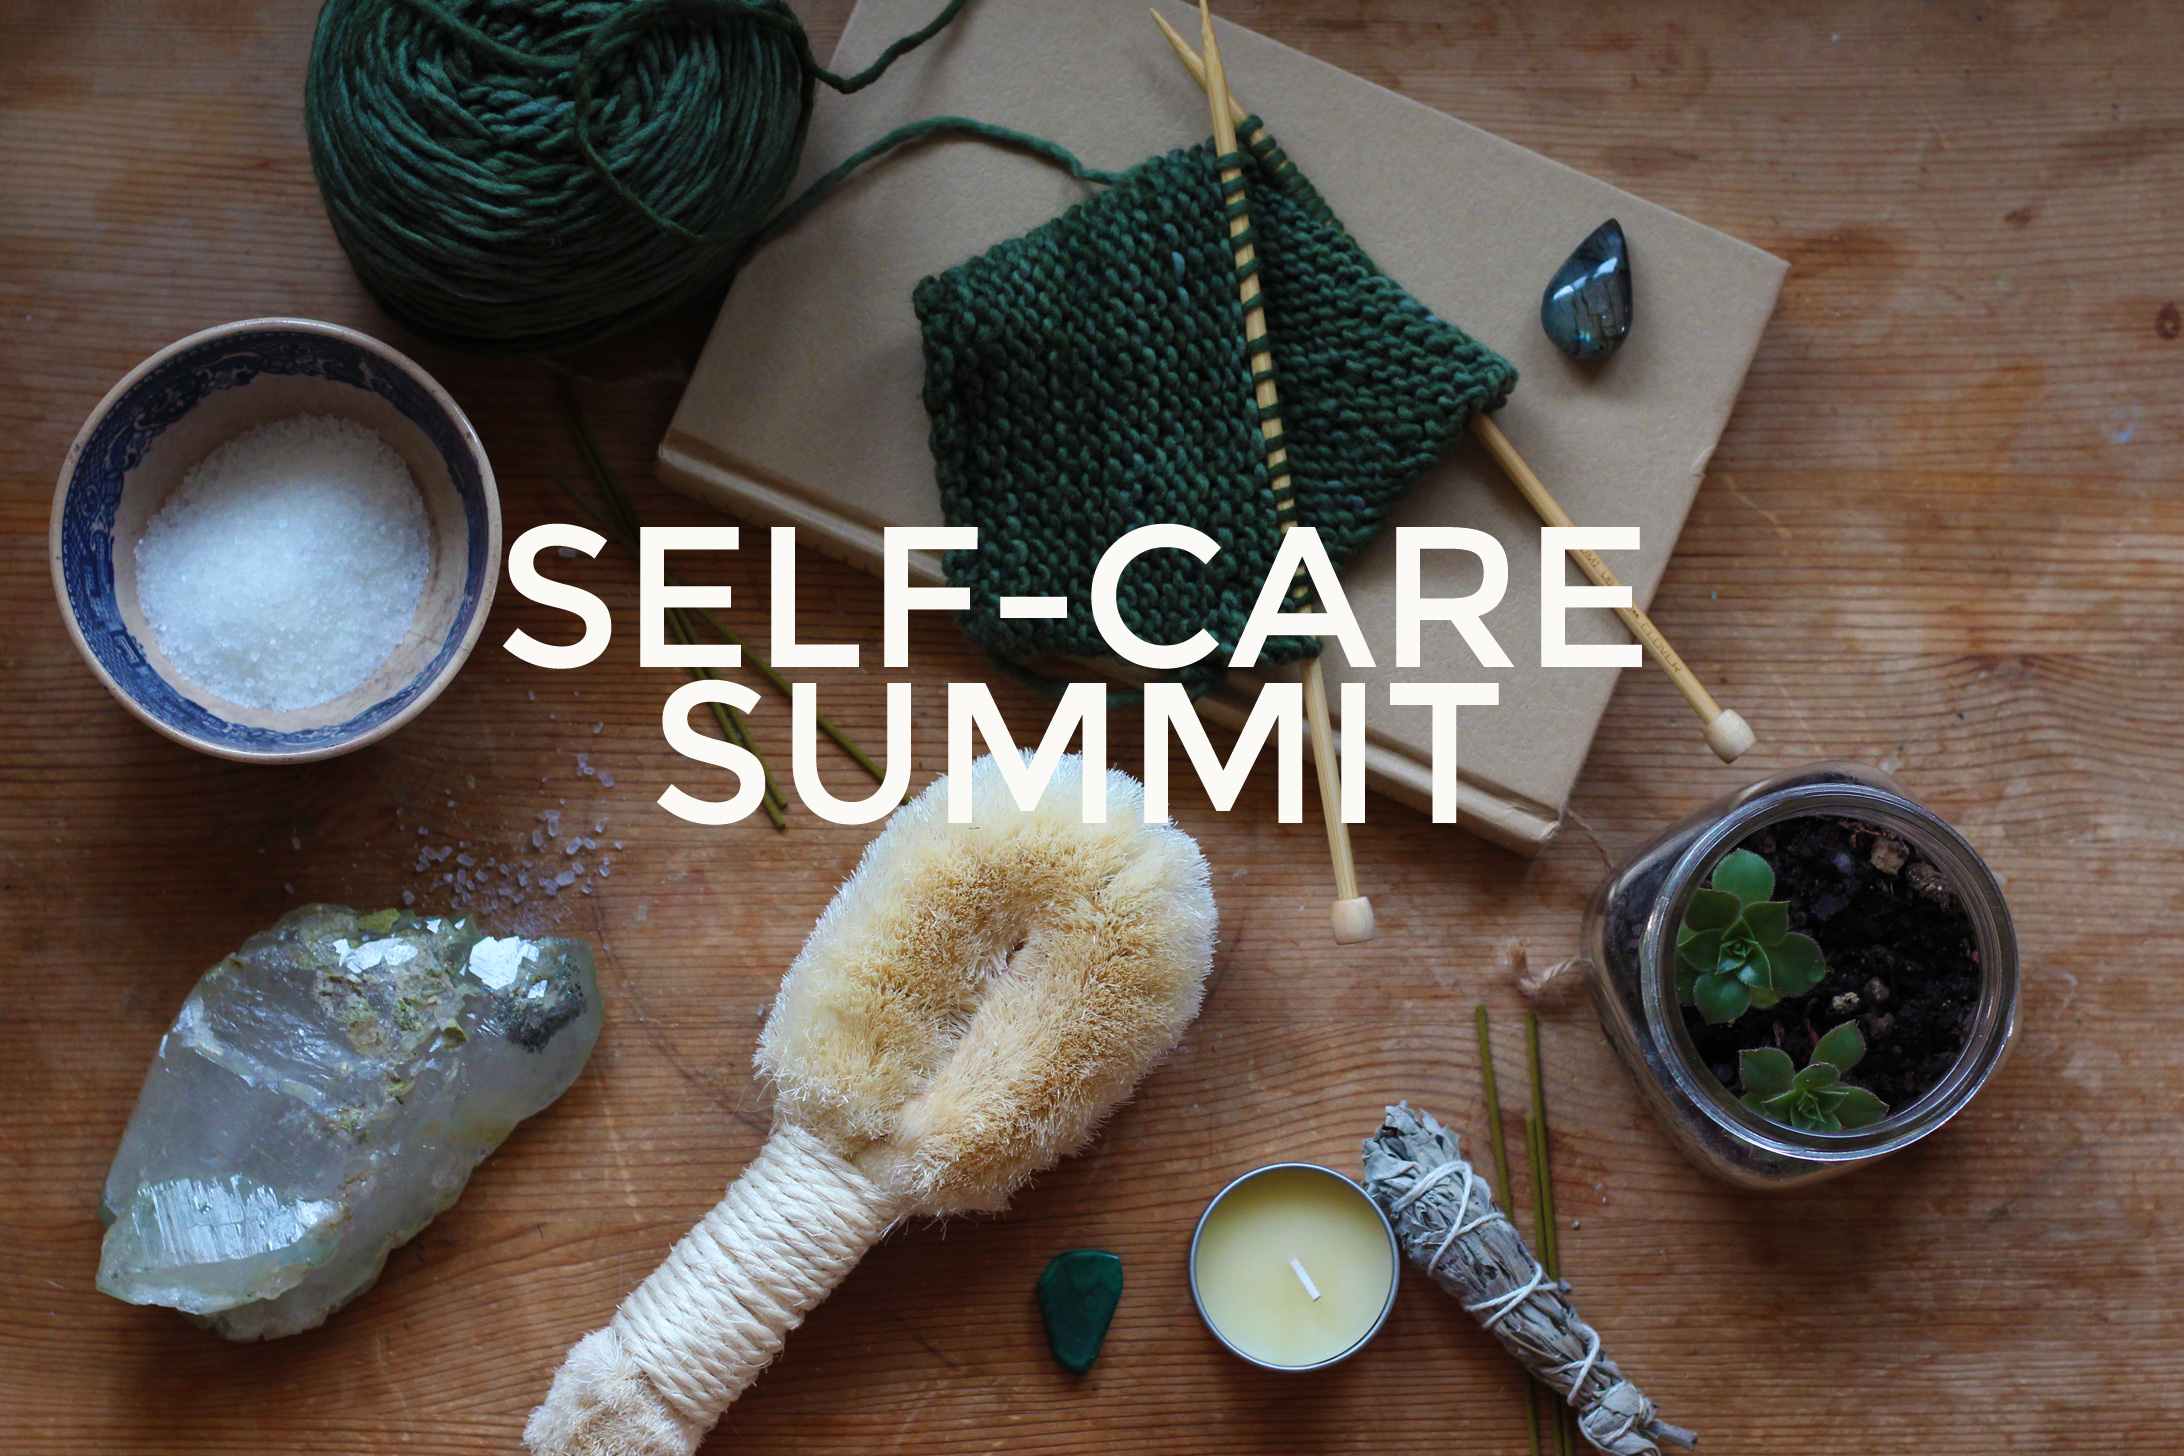 Self-care Summit with Kari of Whole Life Full Soul